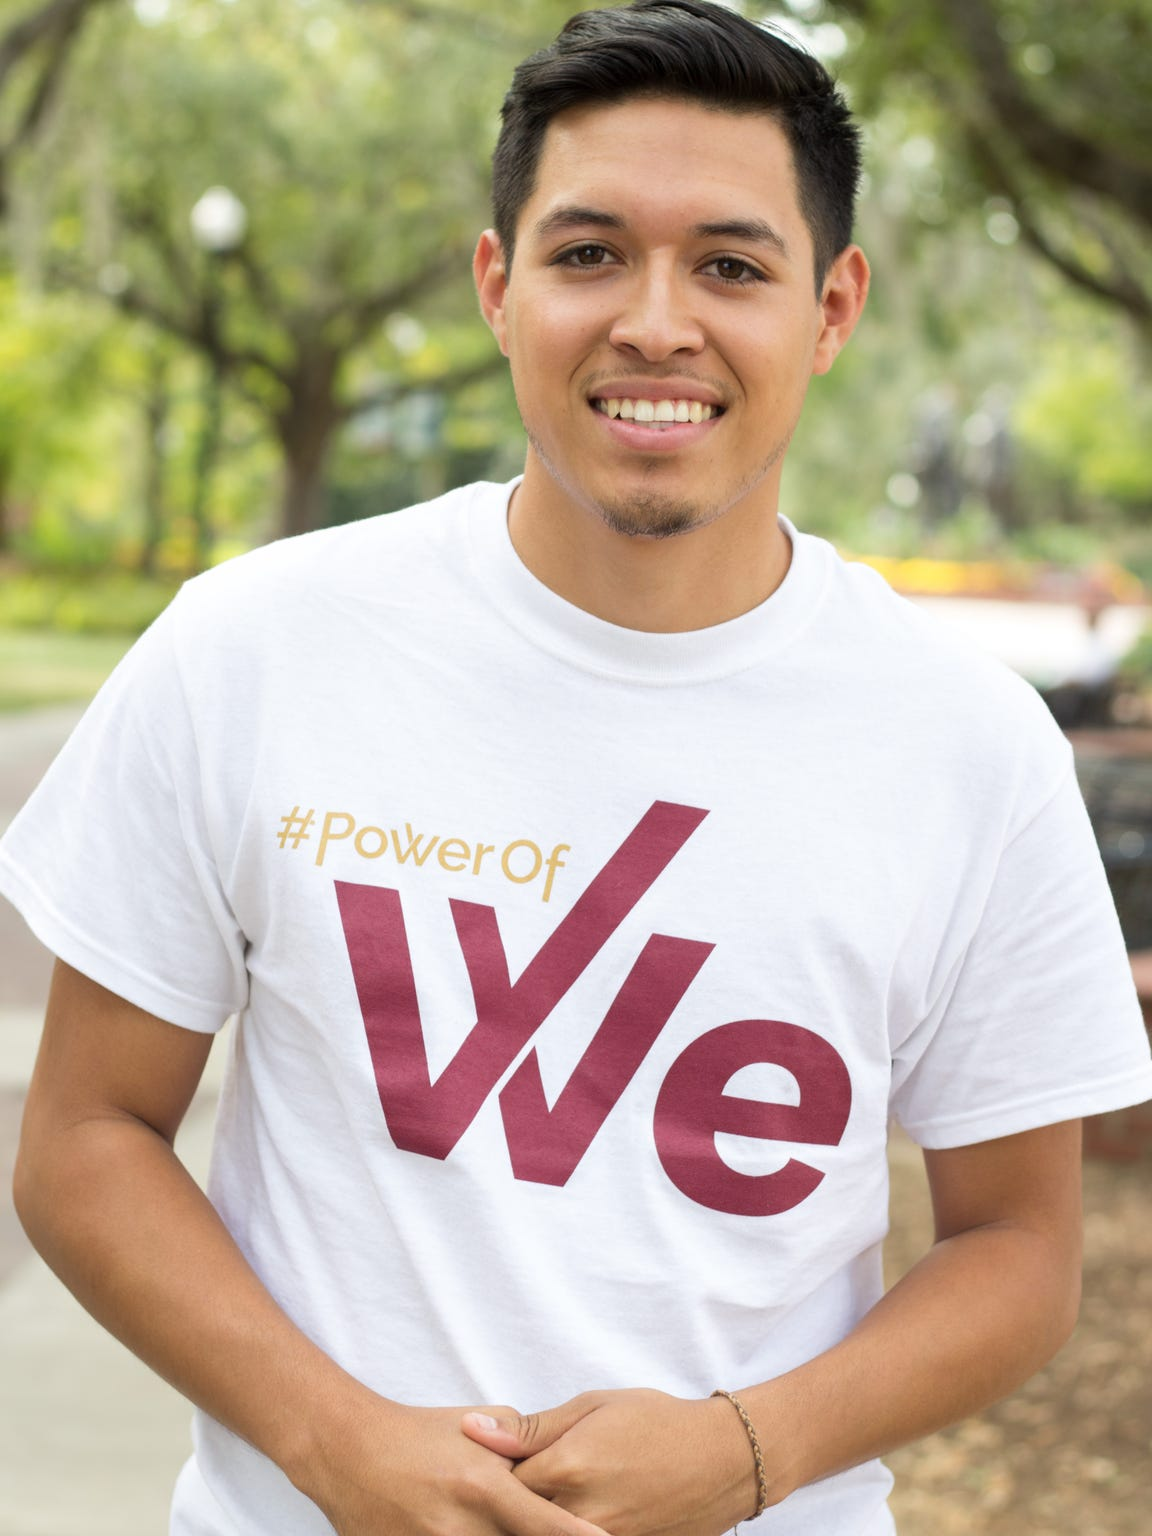 Alfredo Cortez of Florida State University's Student Government on October 27th, 2016.